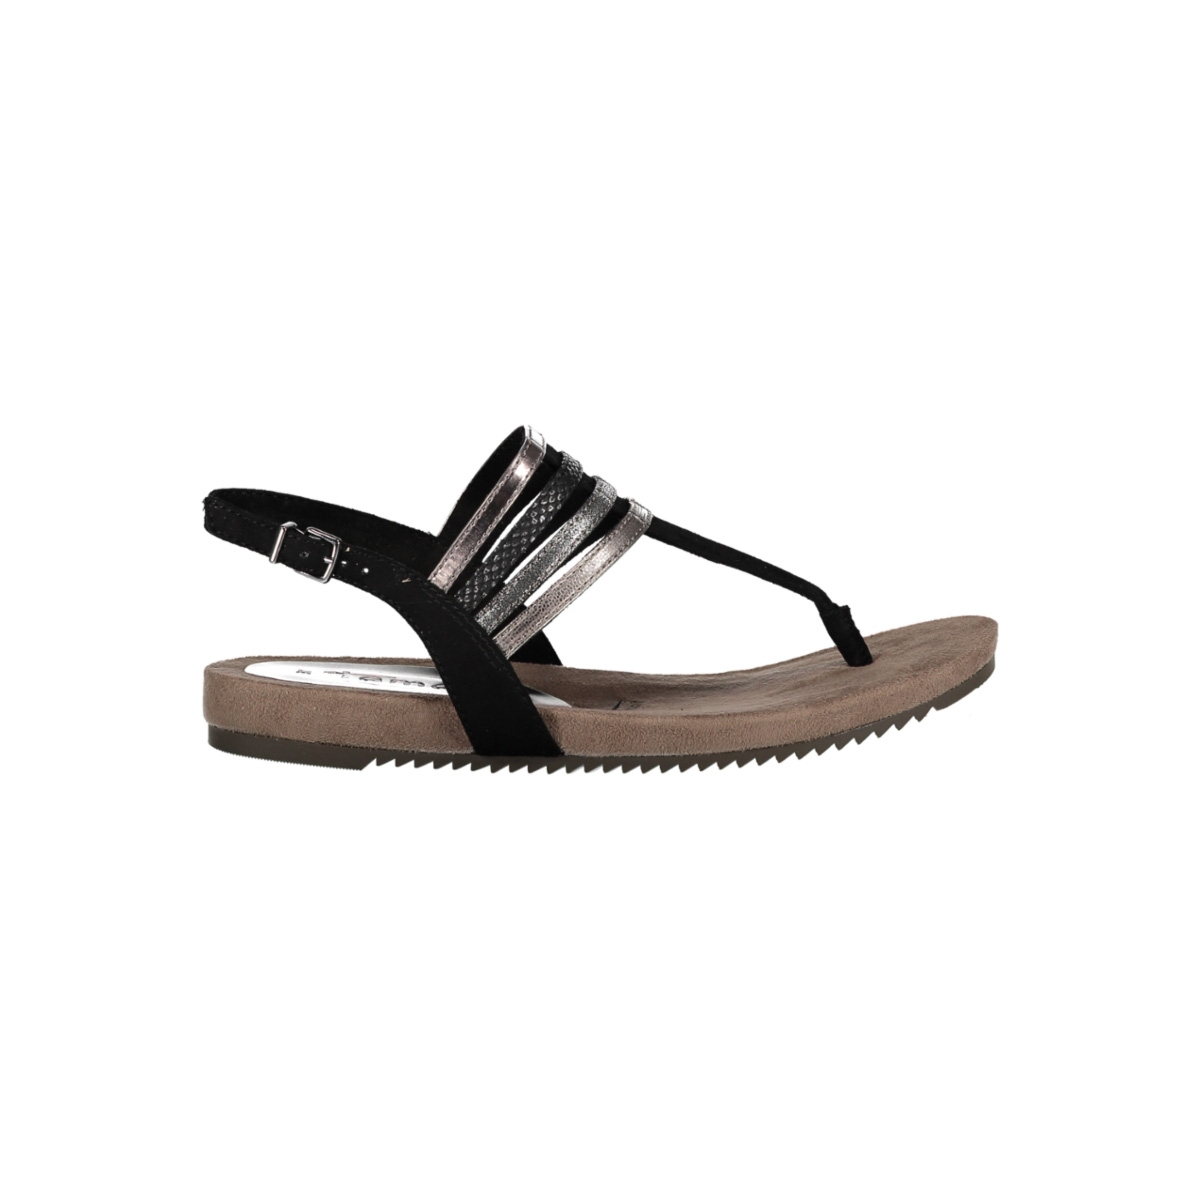 Chaussures Noires 39 Tamaris T5xUa0By